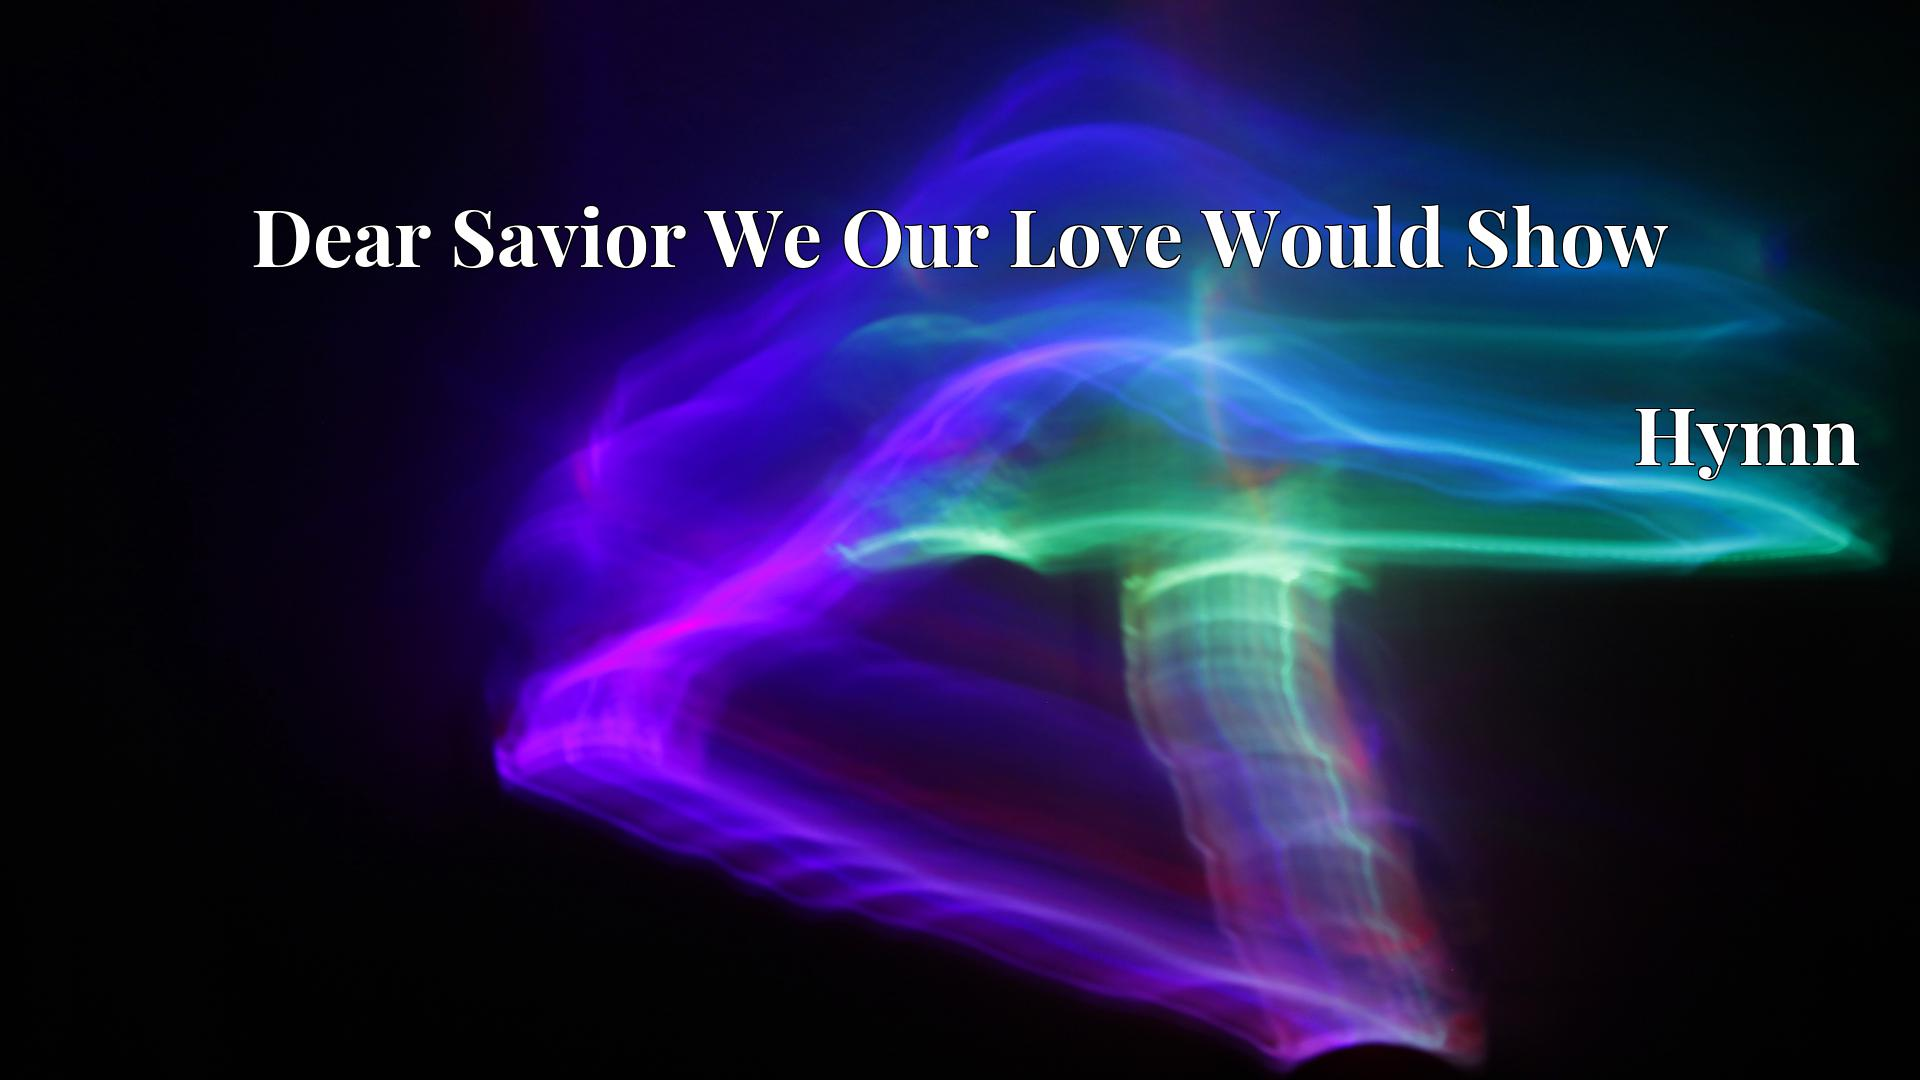 Dear Savior We Our Love Would Show - Hymn